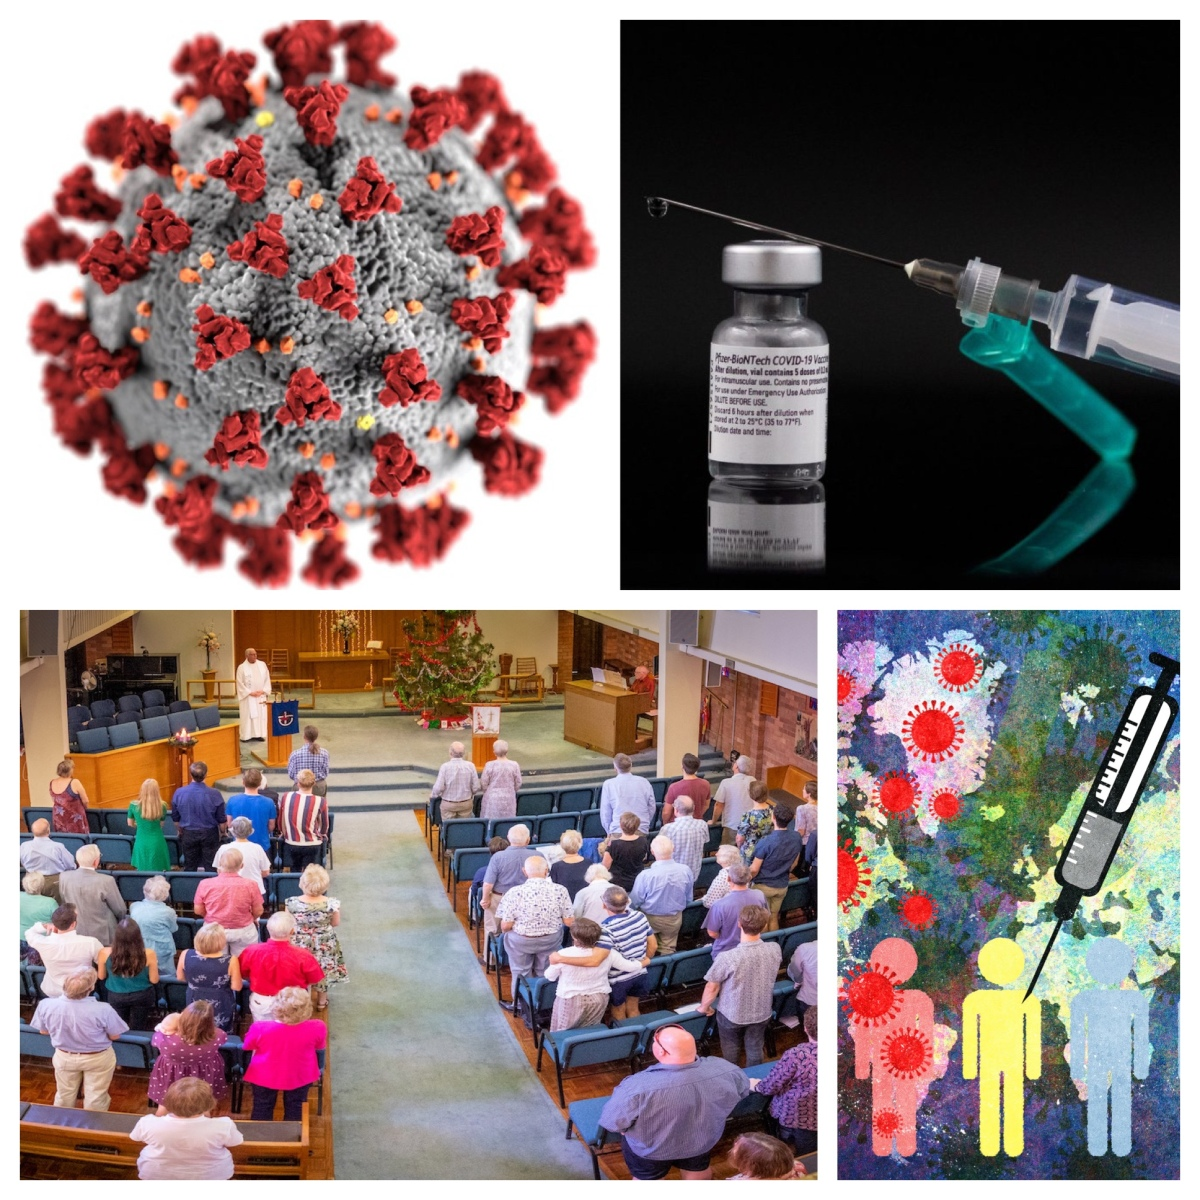 On vaccinations, restrictions, andfundamentalism